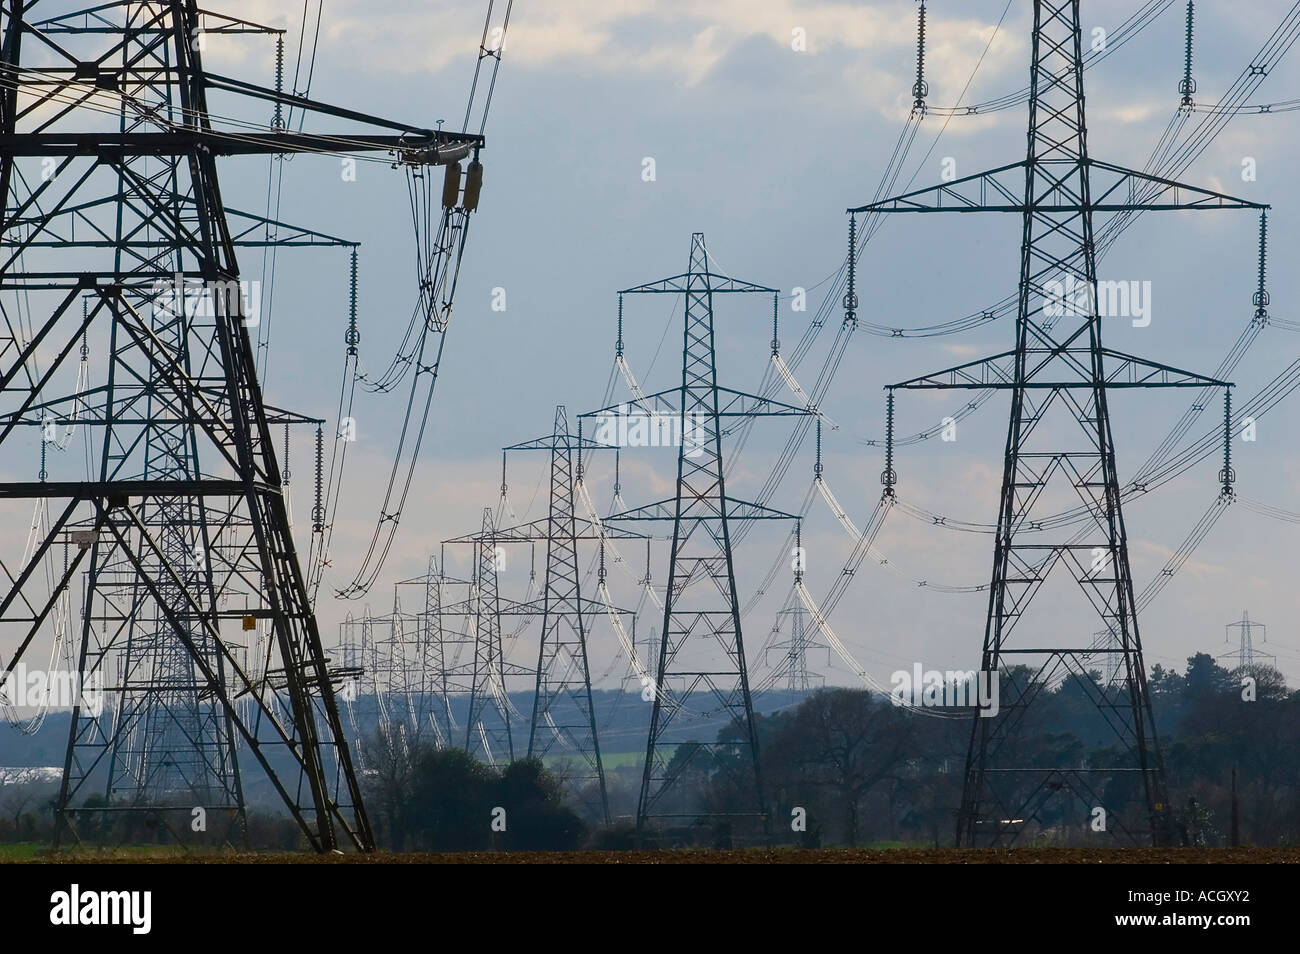 National Grid Electricity Pylons carrying power from Sizewell A and B nuclear power stations off the Suffolk coast, Suffolk, UK - Stock Image